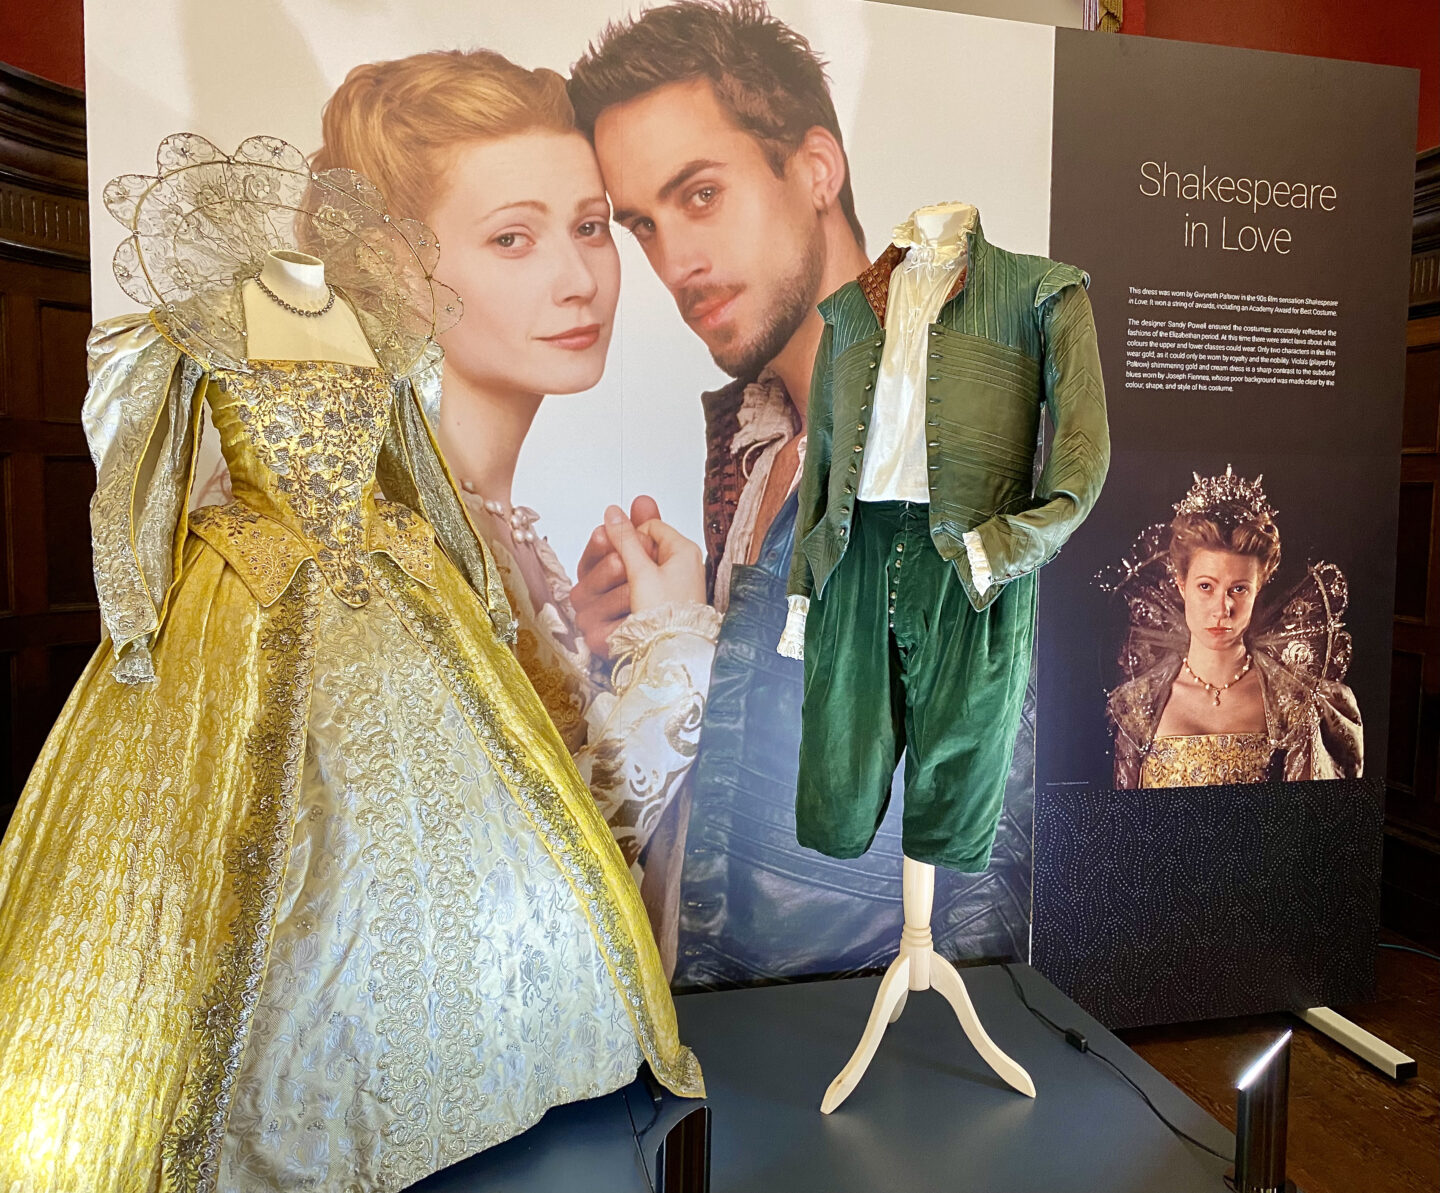 Gywneth Paltrow's dress from Shakespeare in Love